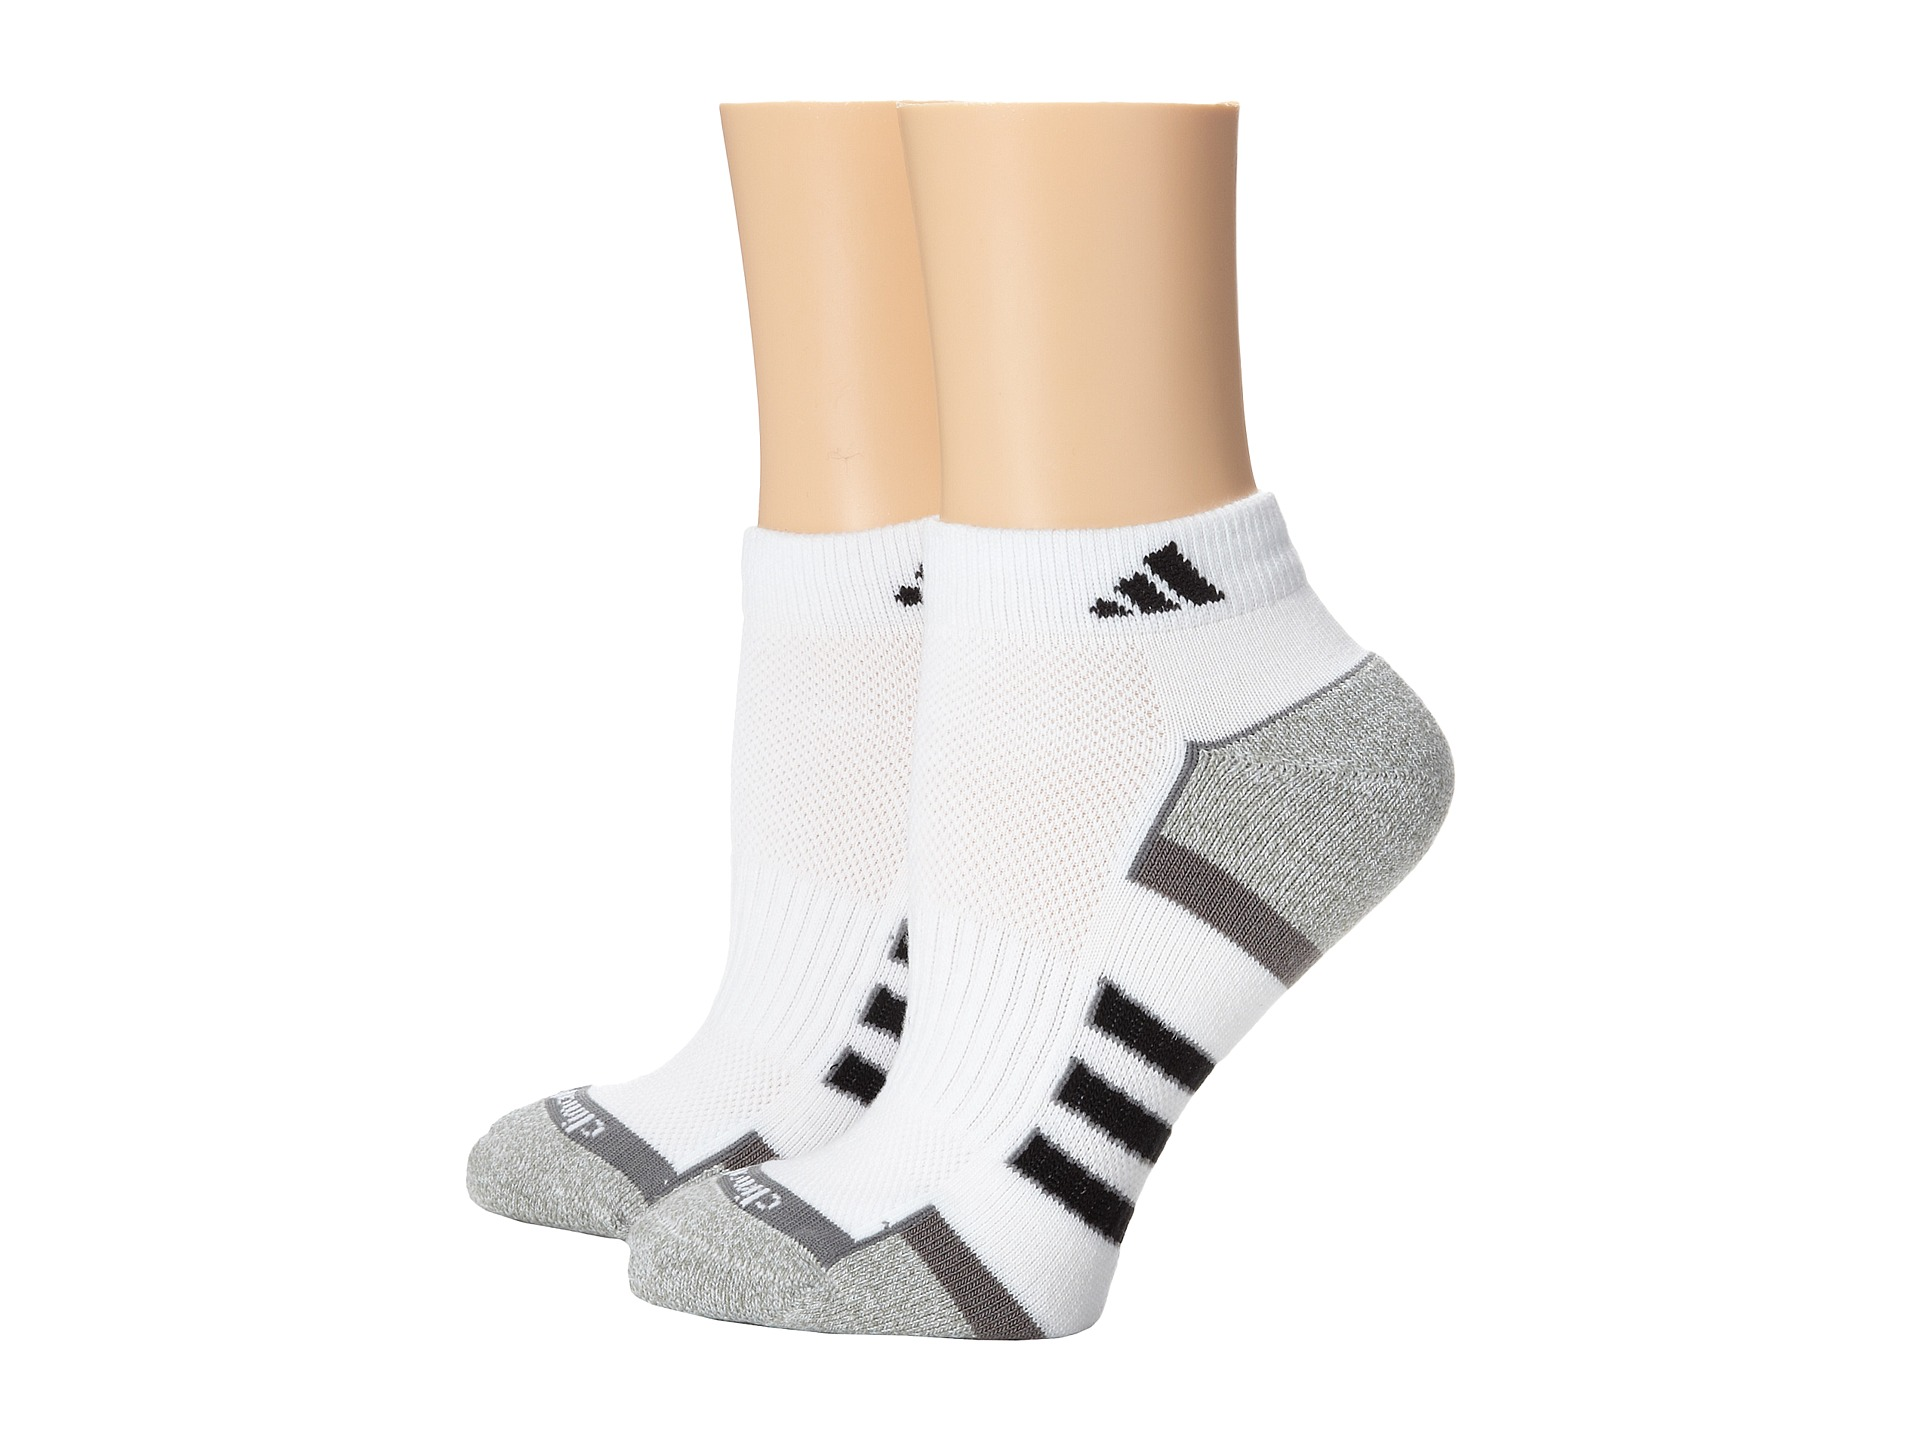 adidas climacool socks review